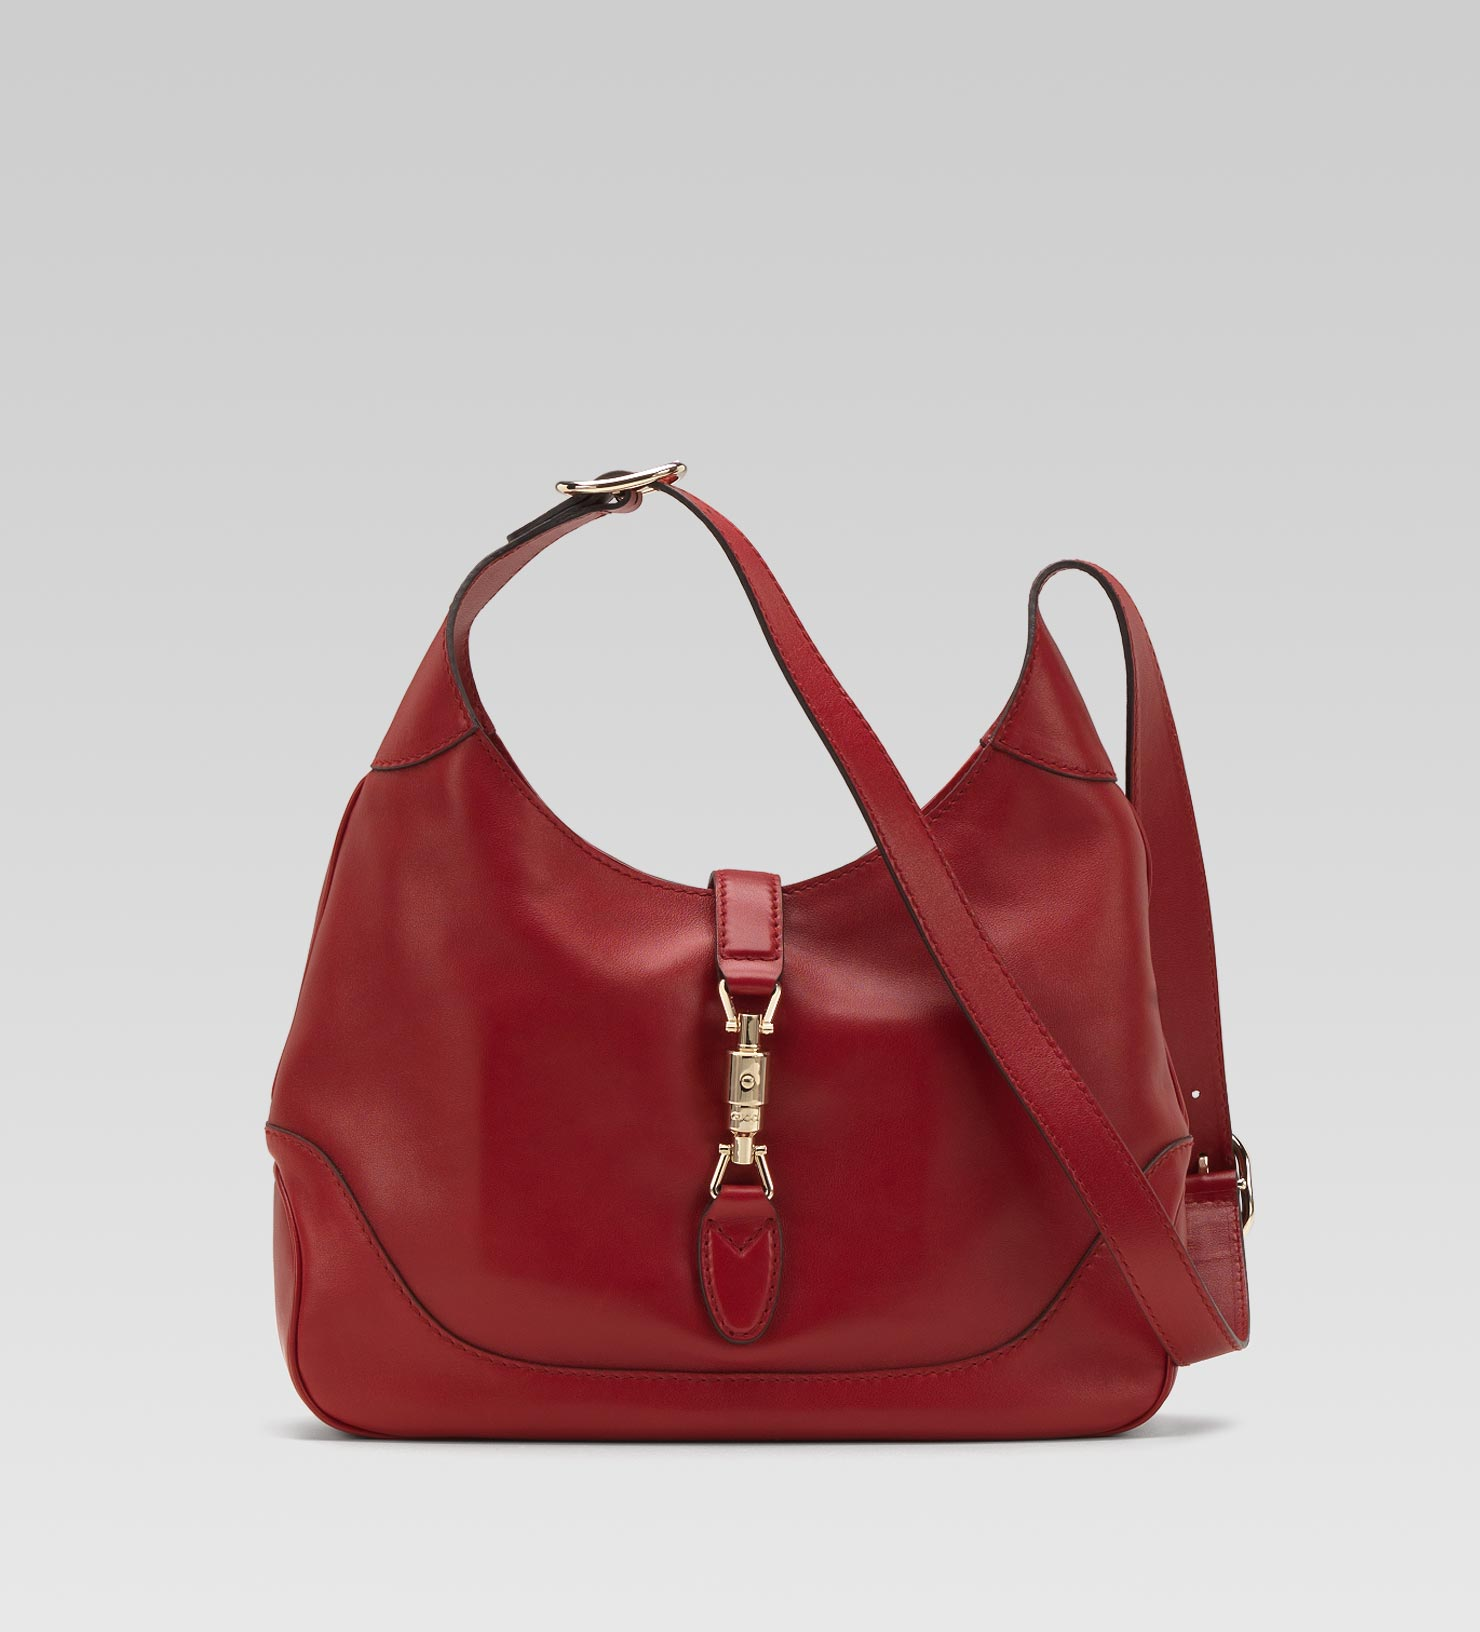 Gucci Jackie Red Leather Shoulder Bag in Red | Lyst